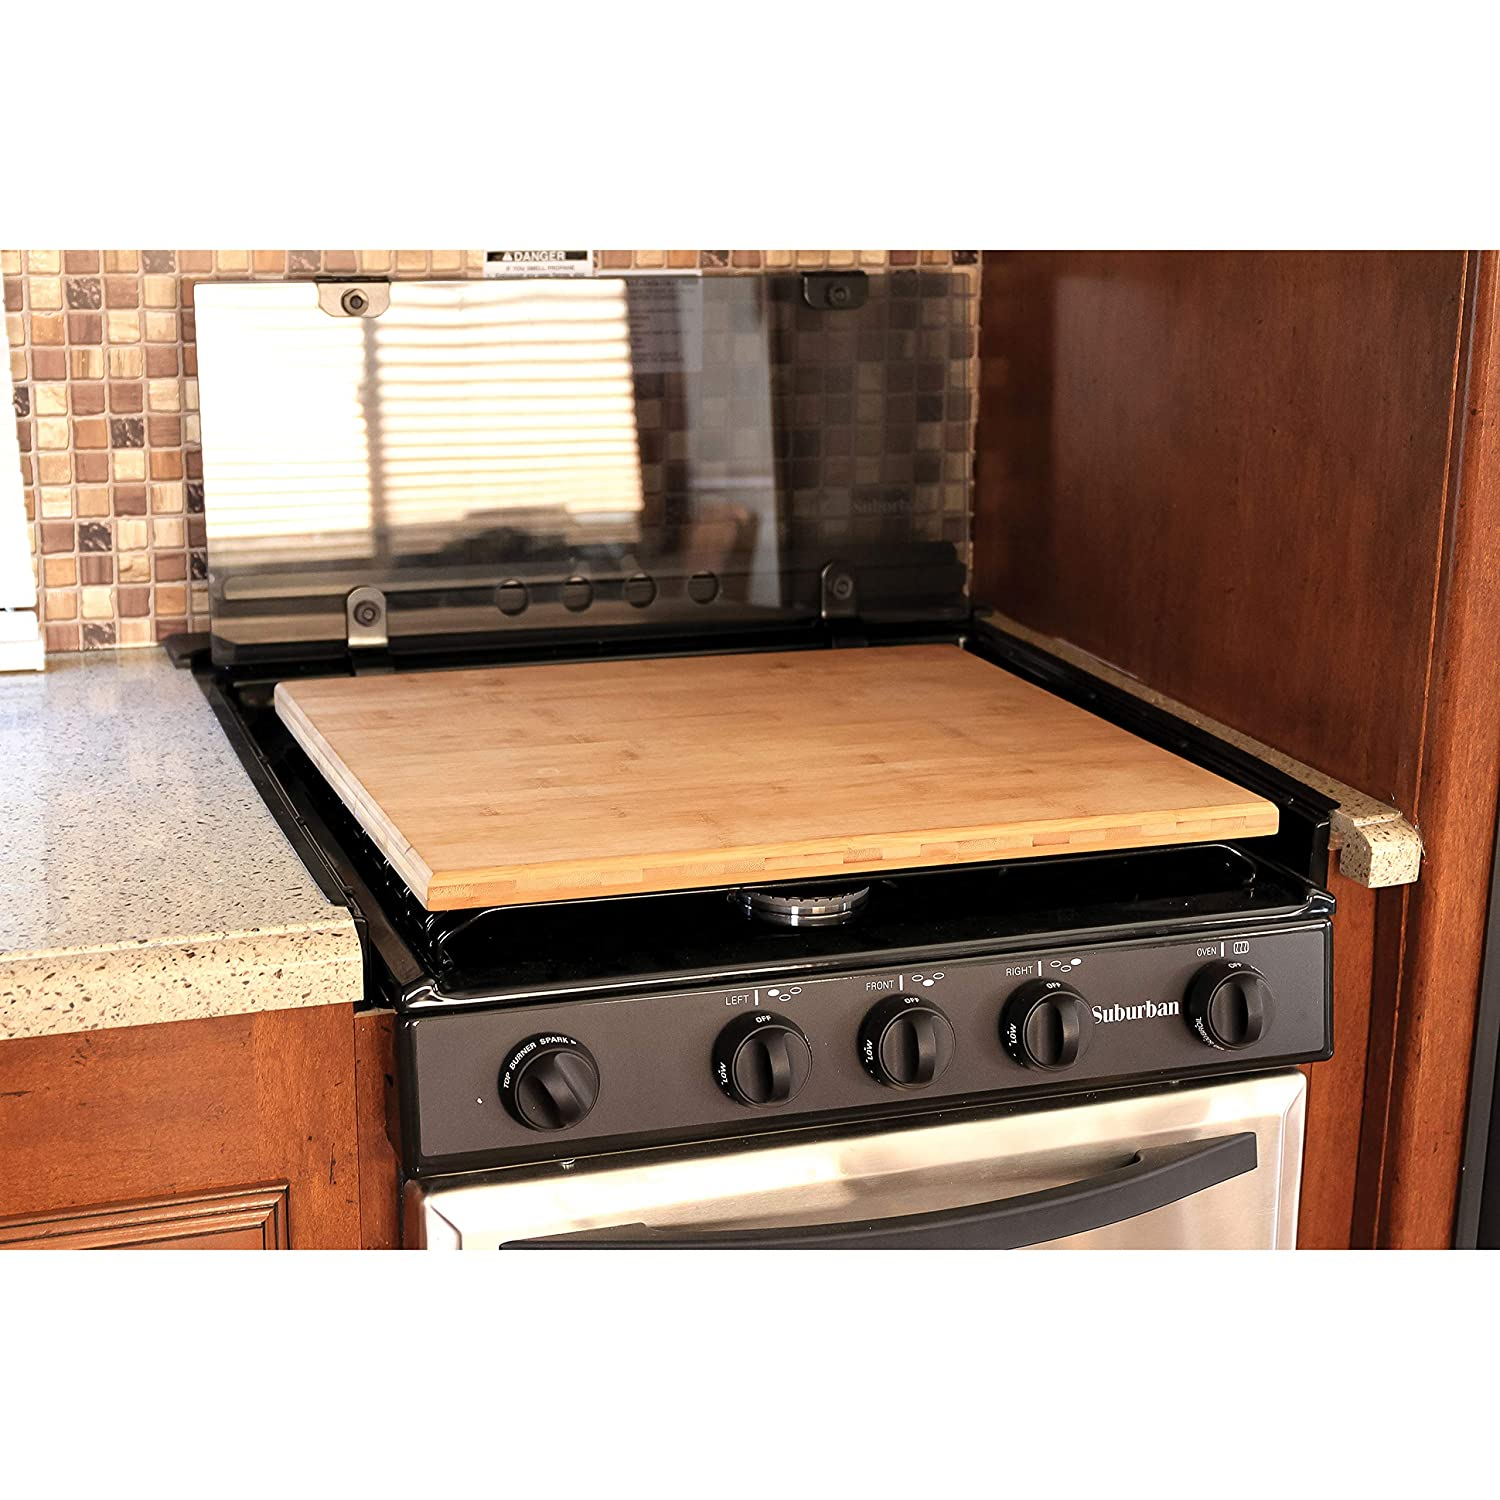 Camco 43571 Stove Cover Bamboo Silent Top